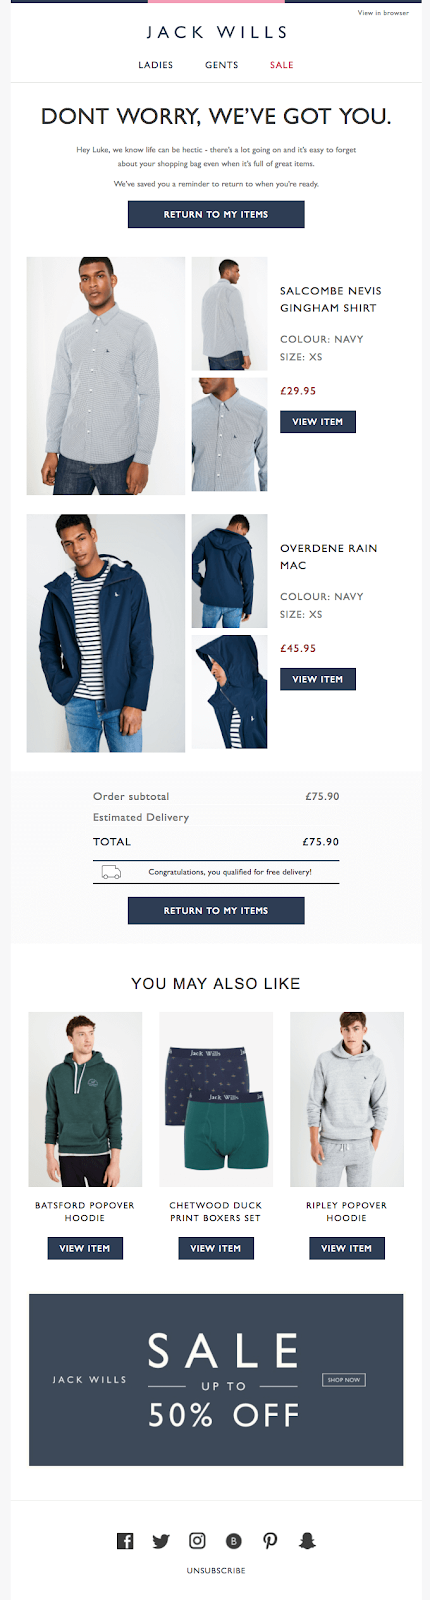 cart-abandonment-sequence-email-design.png